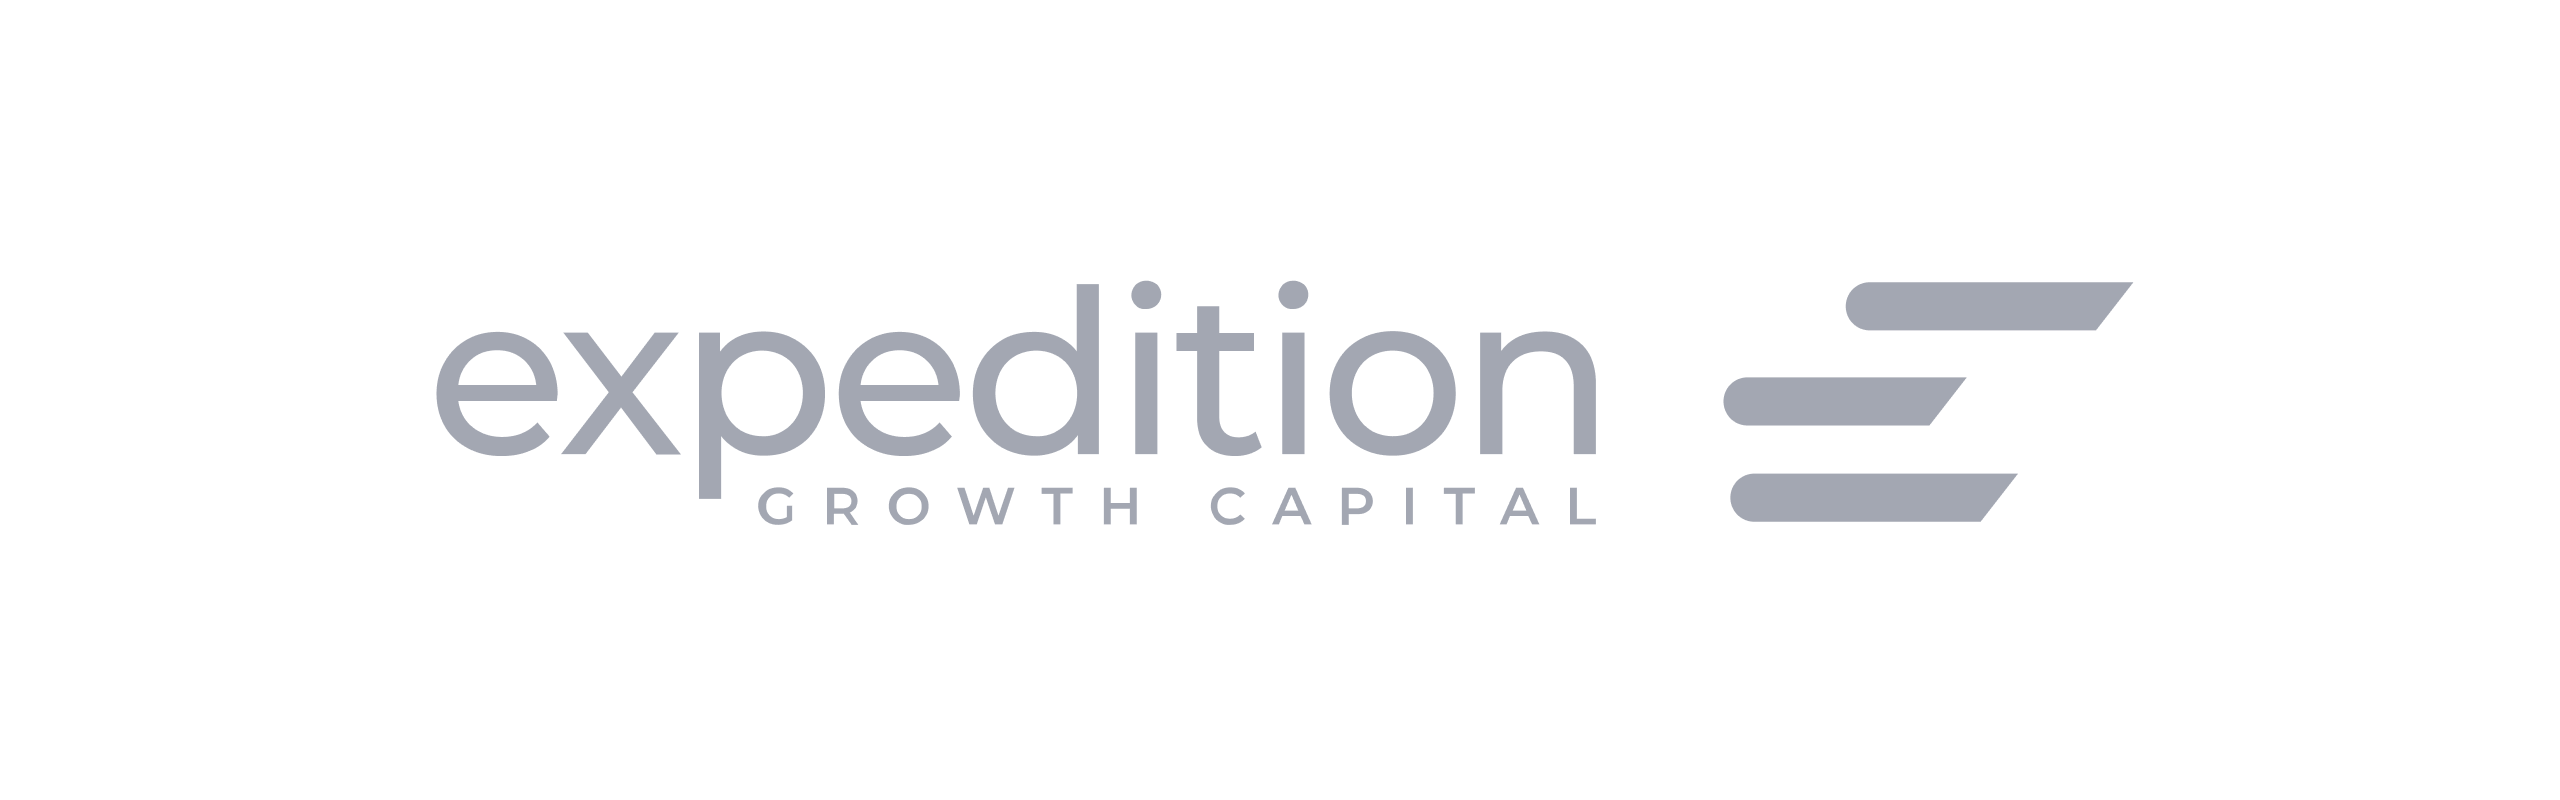 Technology & product due diligence | Code & Co. advises EXPEDITION GROWTH CAPITAL (logo shown)